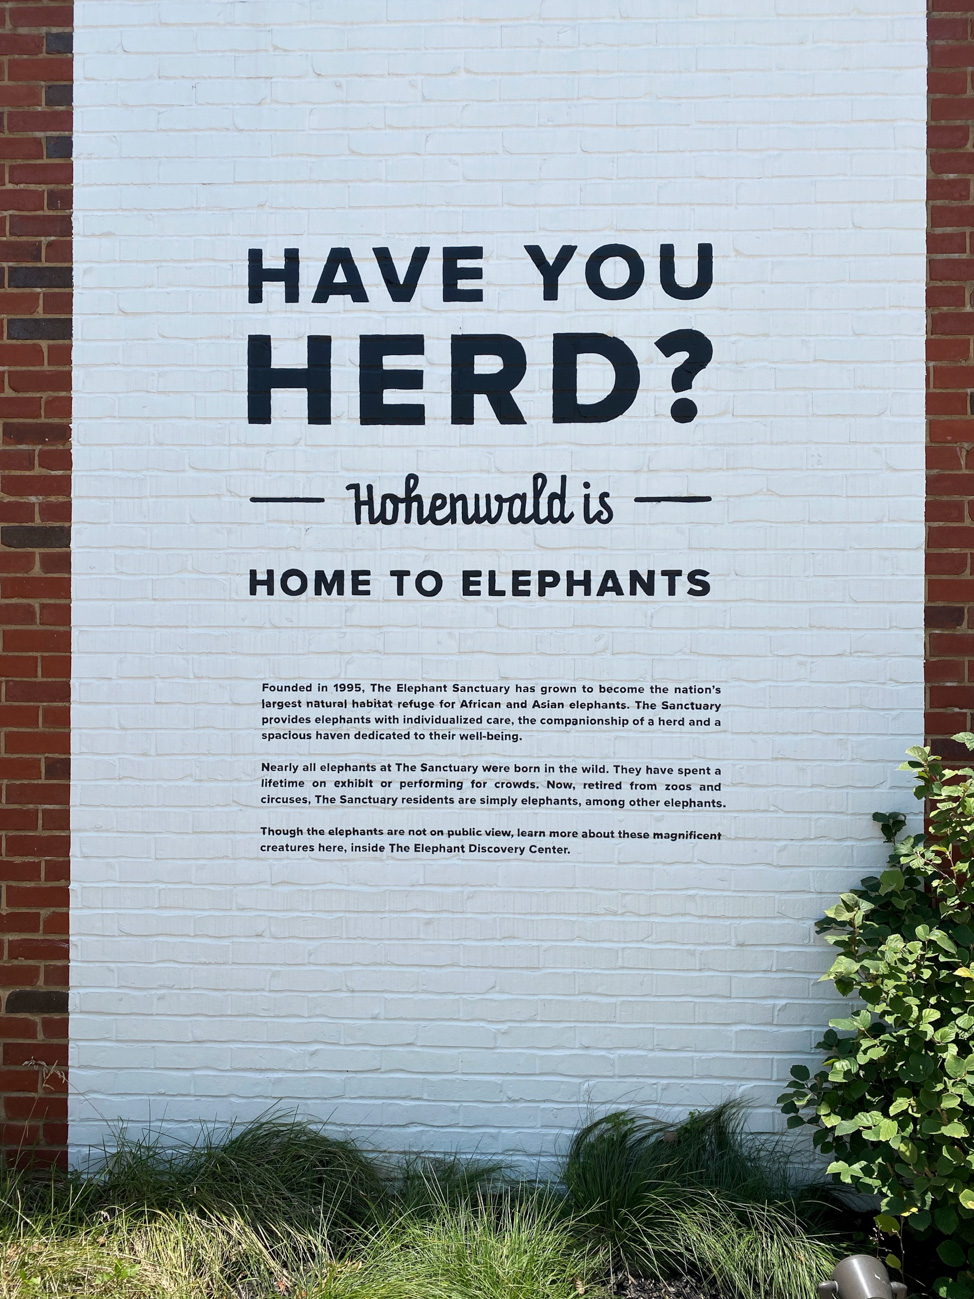 Elephant Sanctuary in Hohenwald, Tennessee